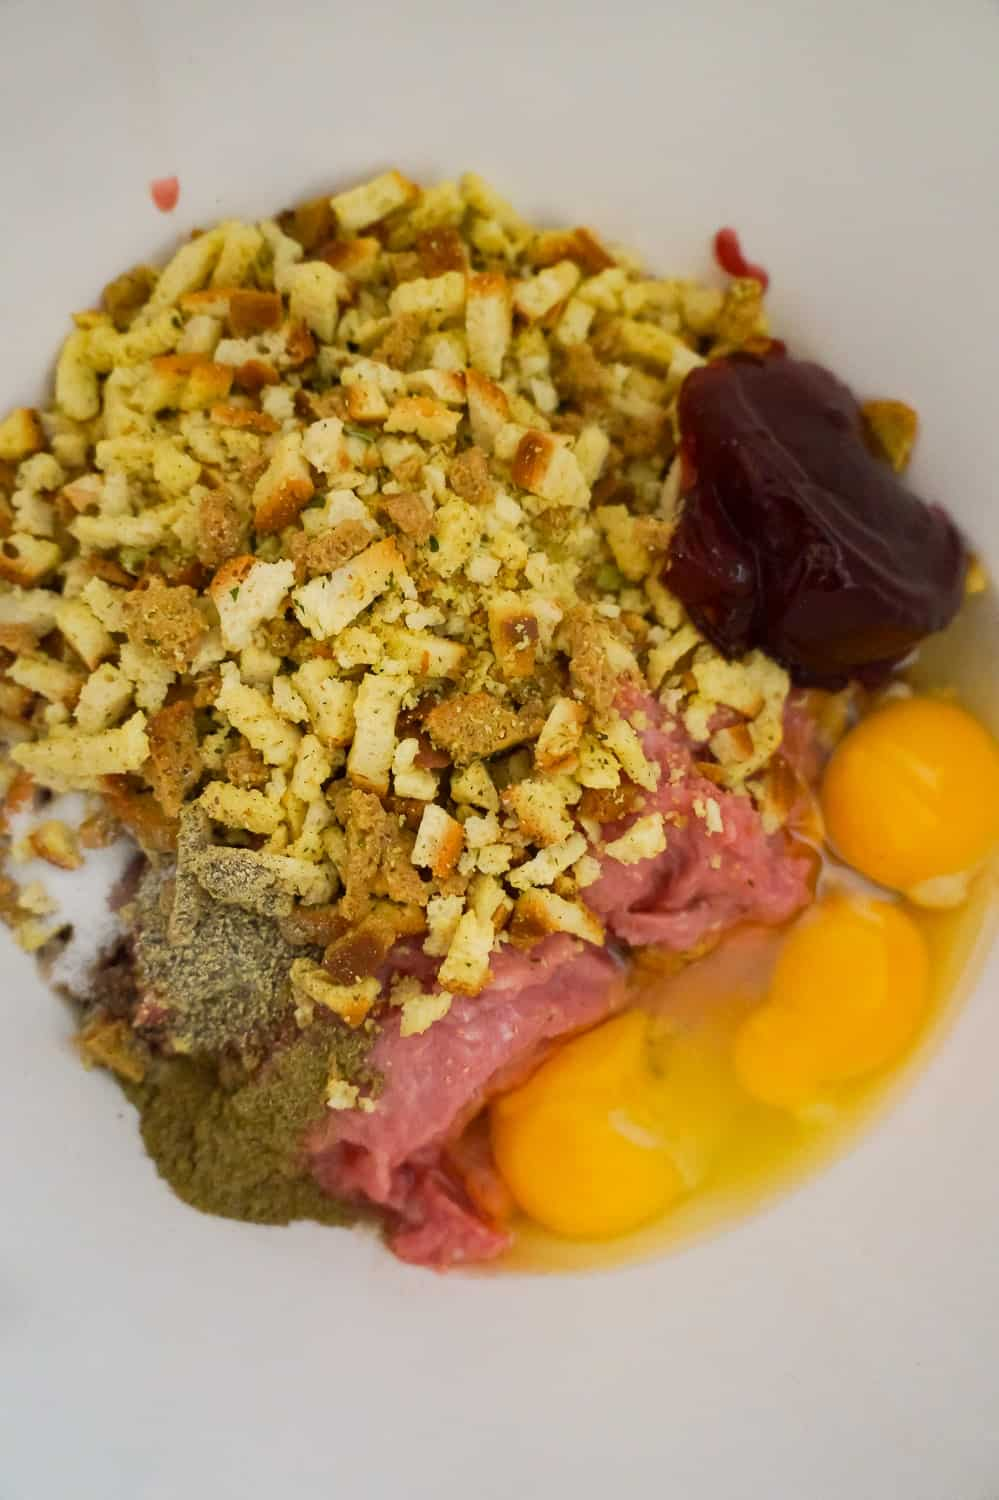 stove top stuffing mix, cranberry sauce and eggs on top of ground turkey in a mixing bowl